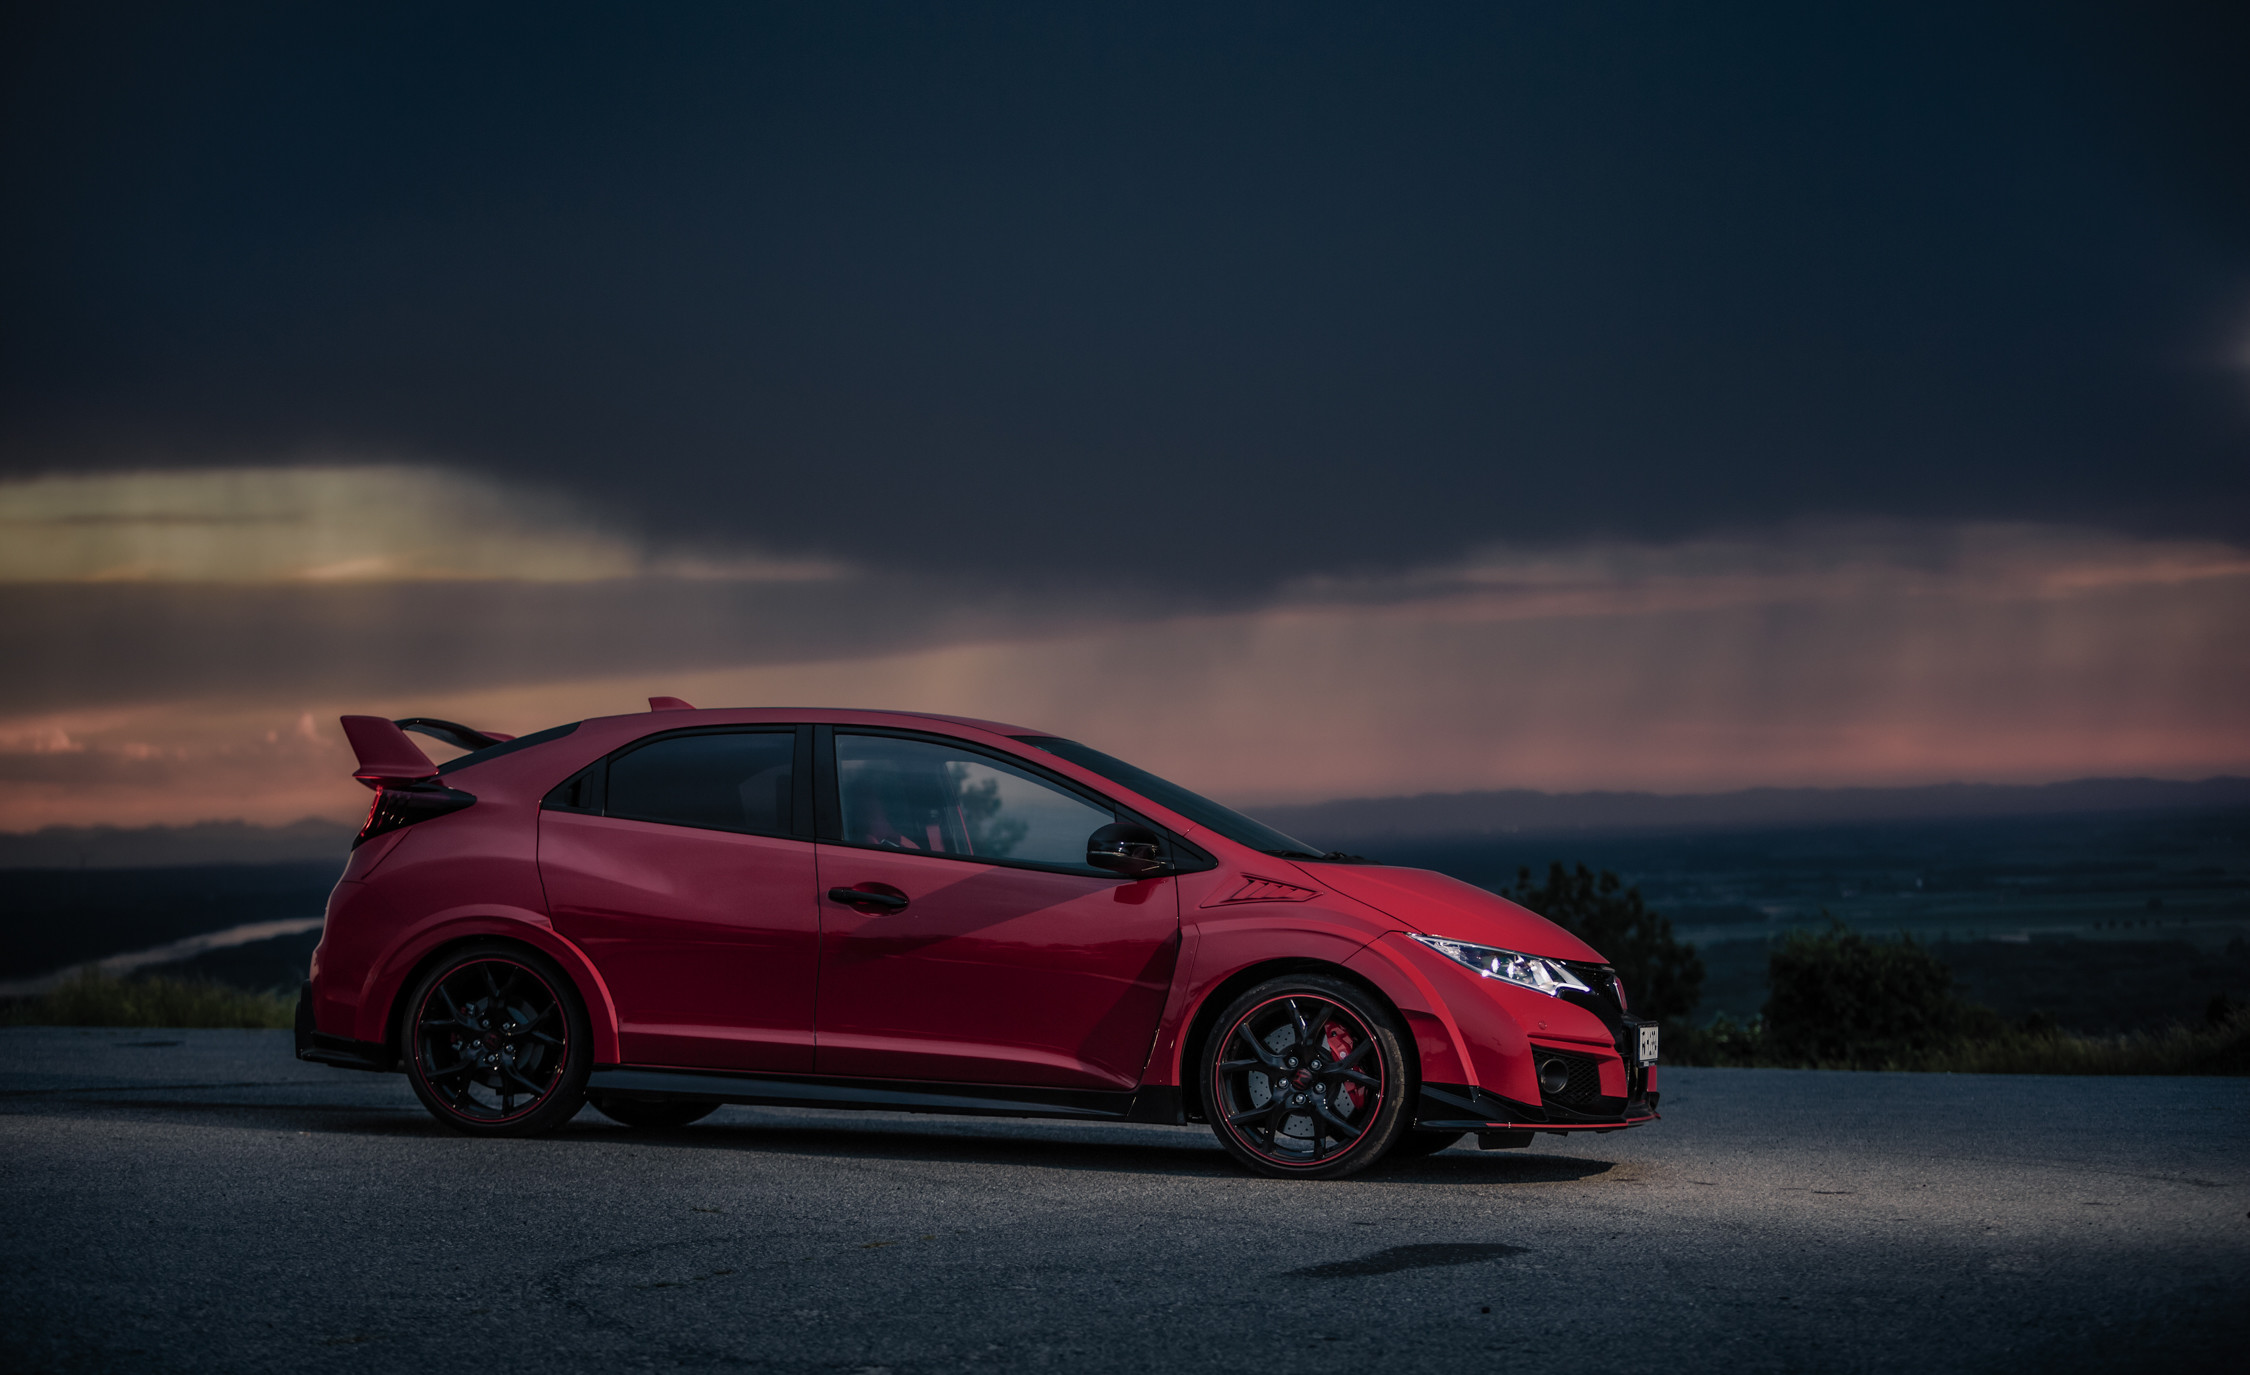 Honda Civic Wallpaper 62 Pictures